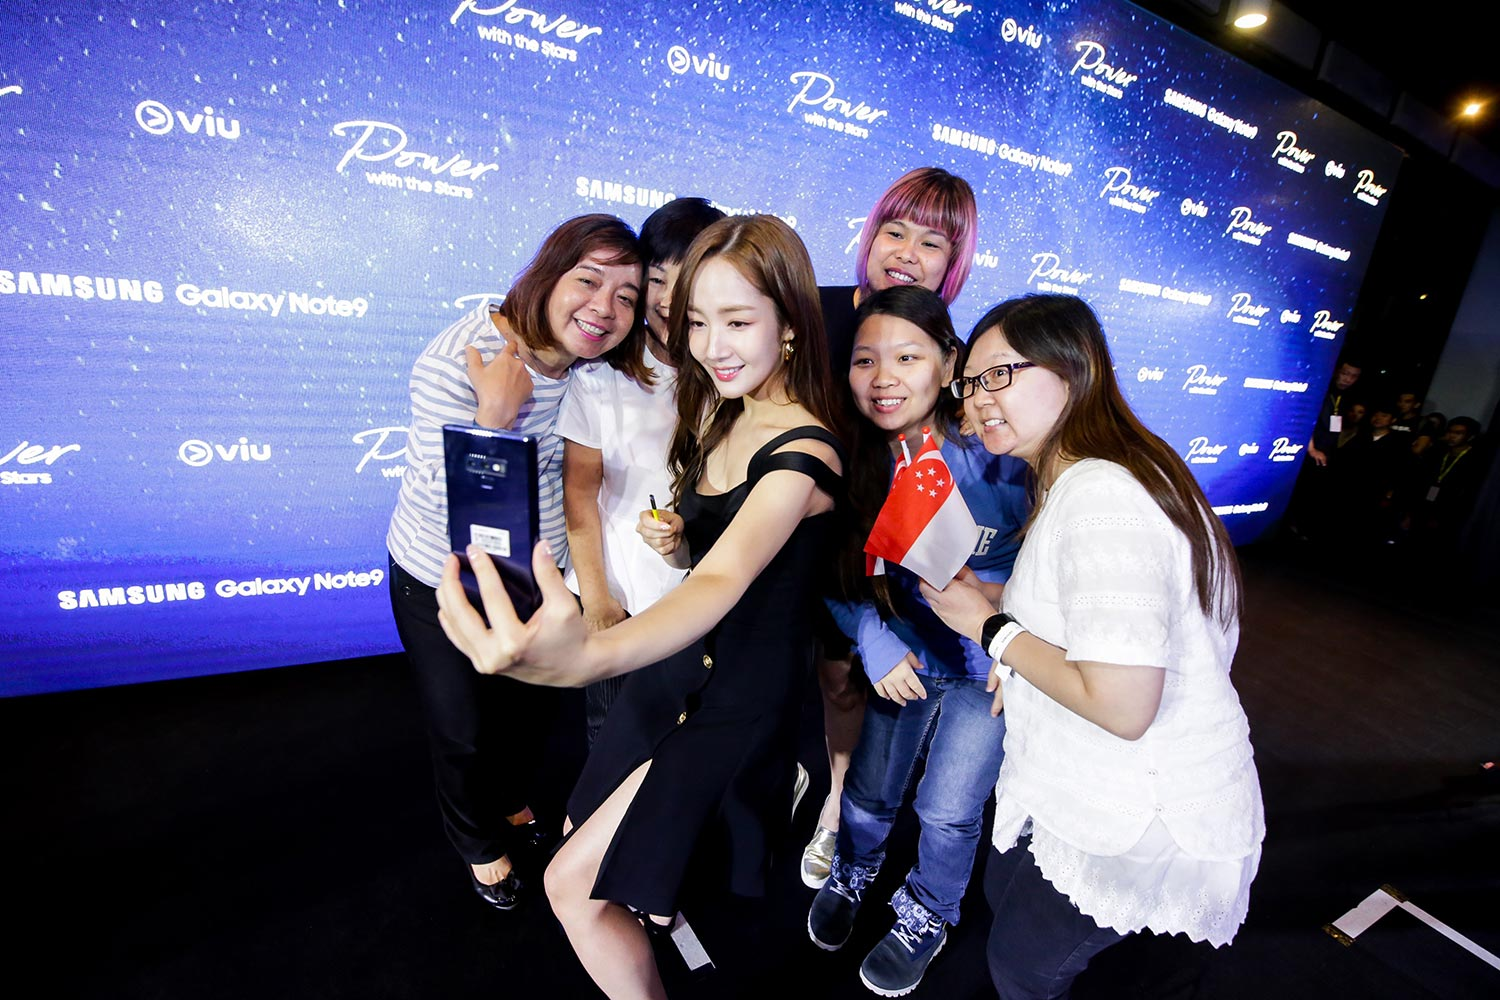 Samsung Celebrates the Launch of the Galaxy Note9 with Kim Jong Kook and Park Min Young at Gardens by the Bay